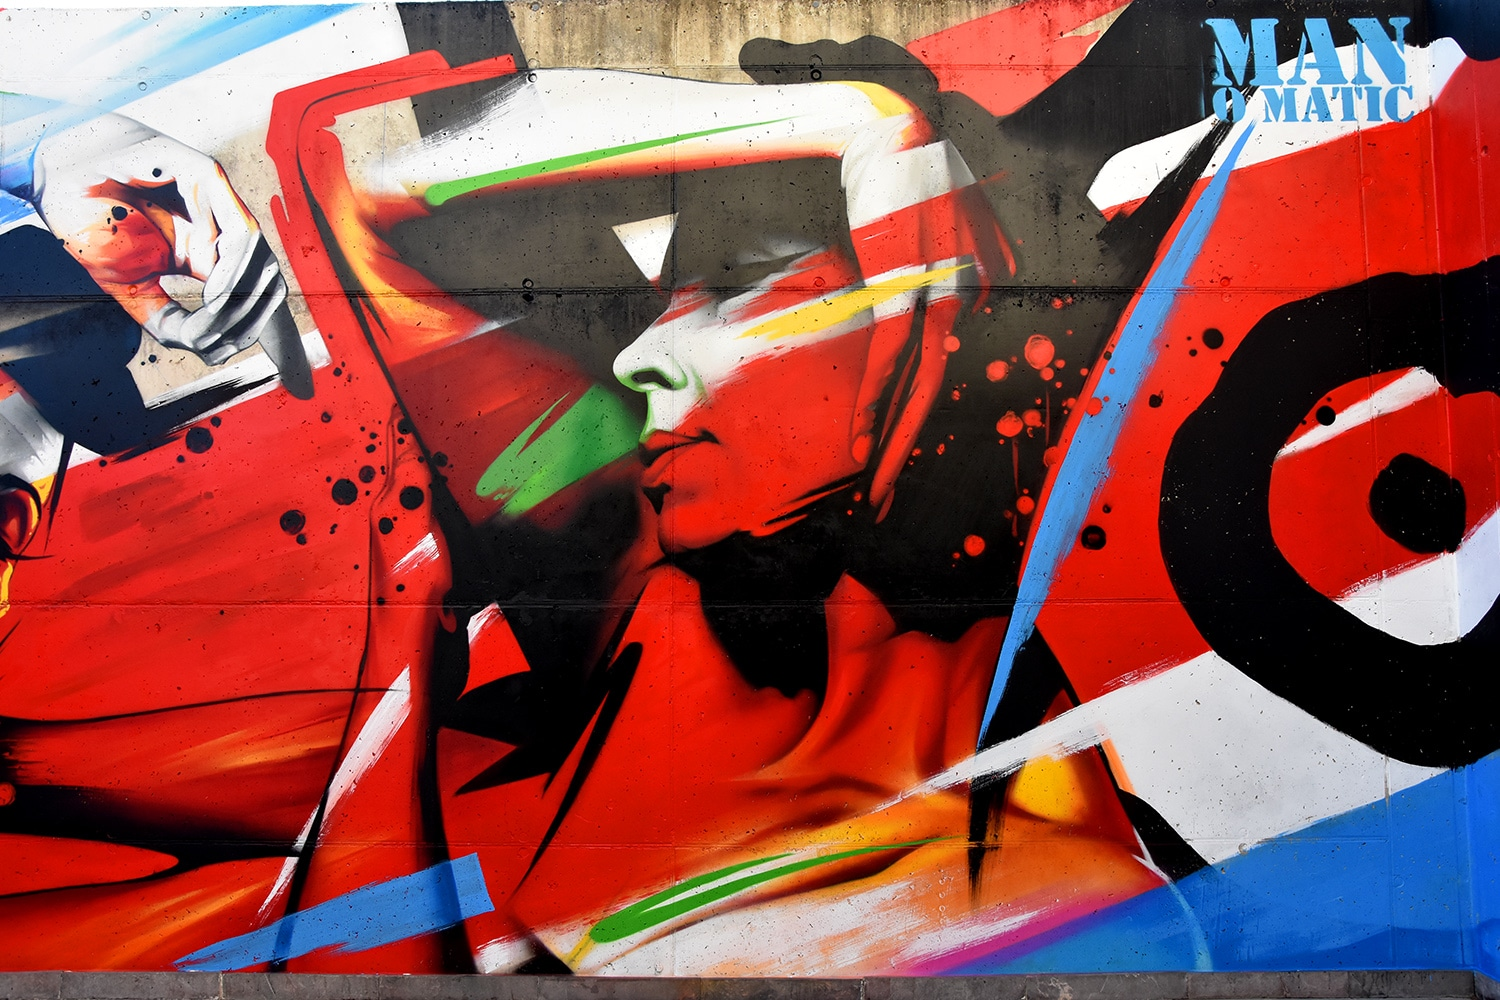 Contemporary mural art